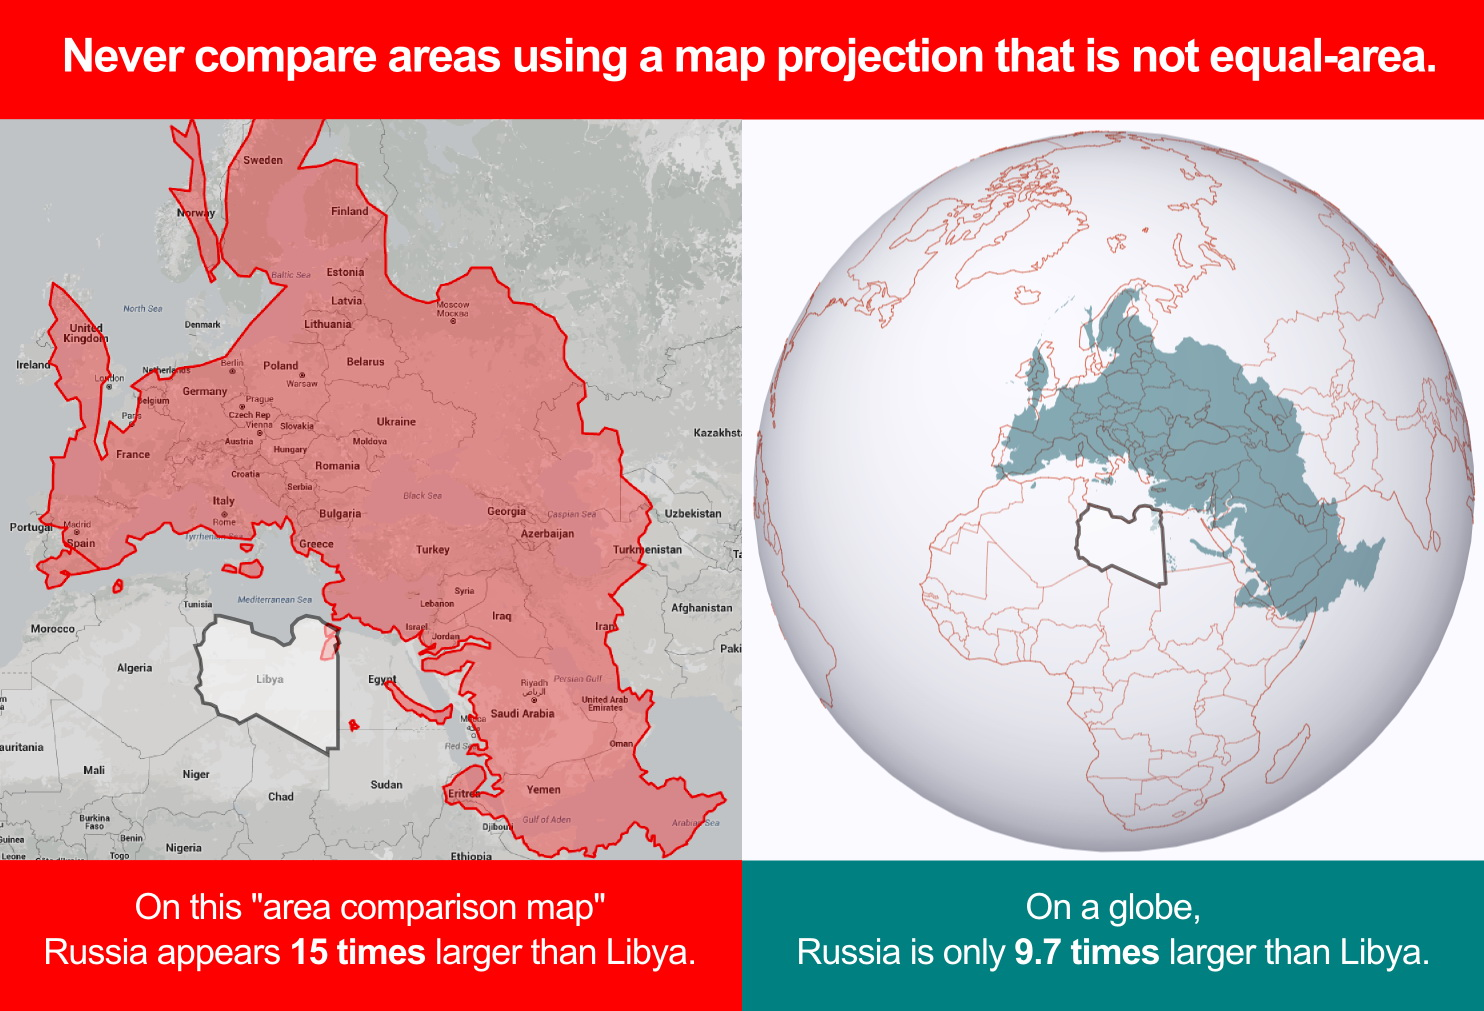 Never compare areas using a map projection that is not equal-area